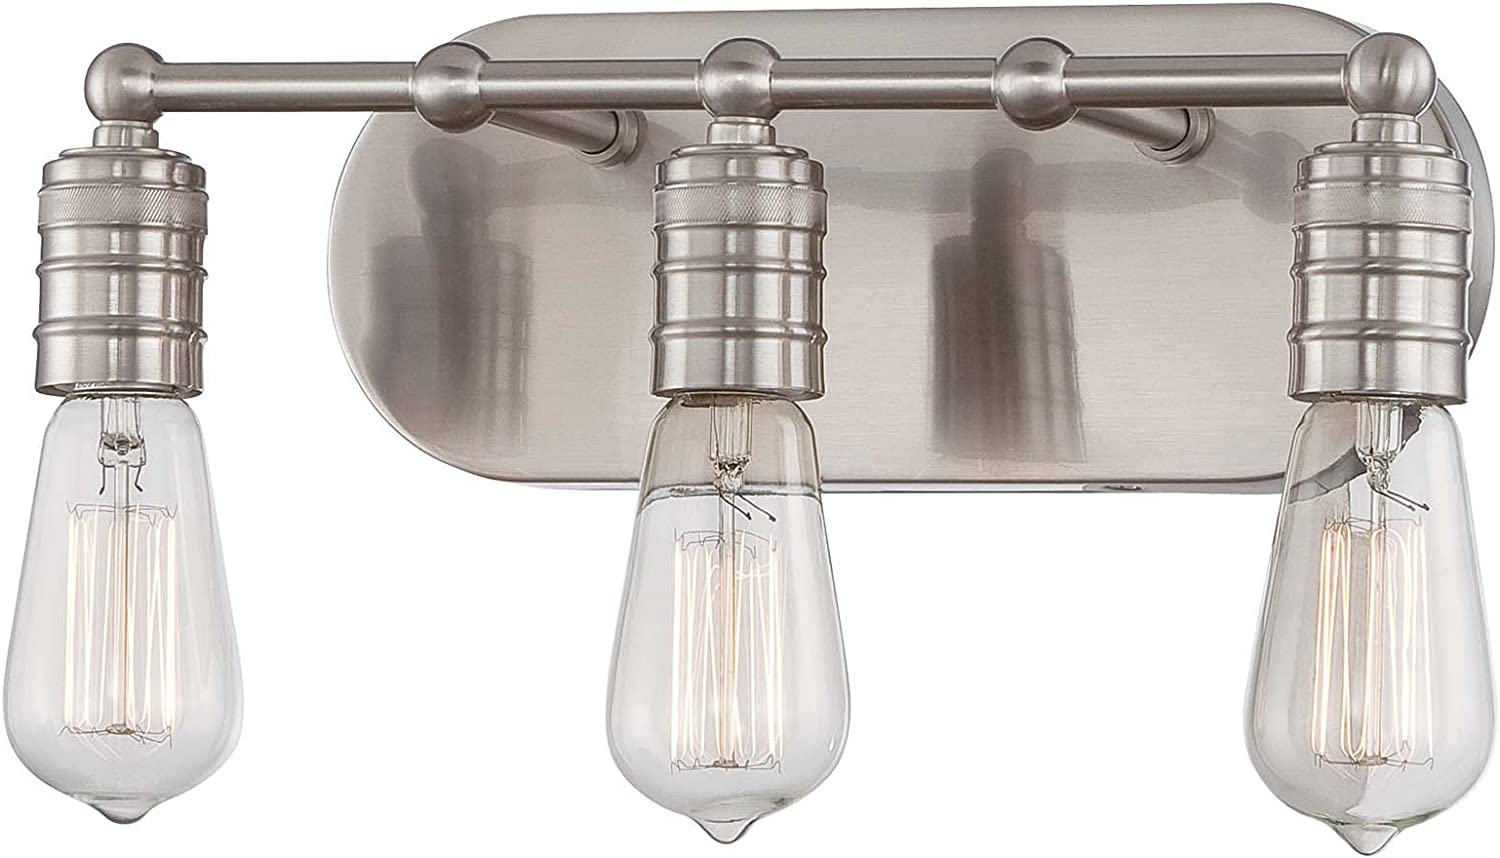 Minka Lavery Farmhouse Wall Light Fixtures 5135-84 Downtown Edison Wall Bath Vanity Lighting, 3-Light 120 Watts, Brushed Nickel